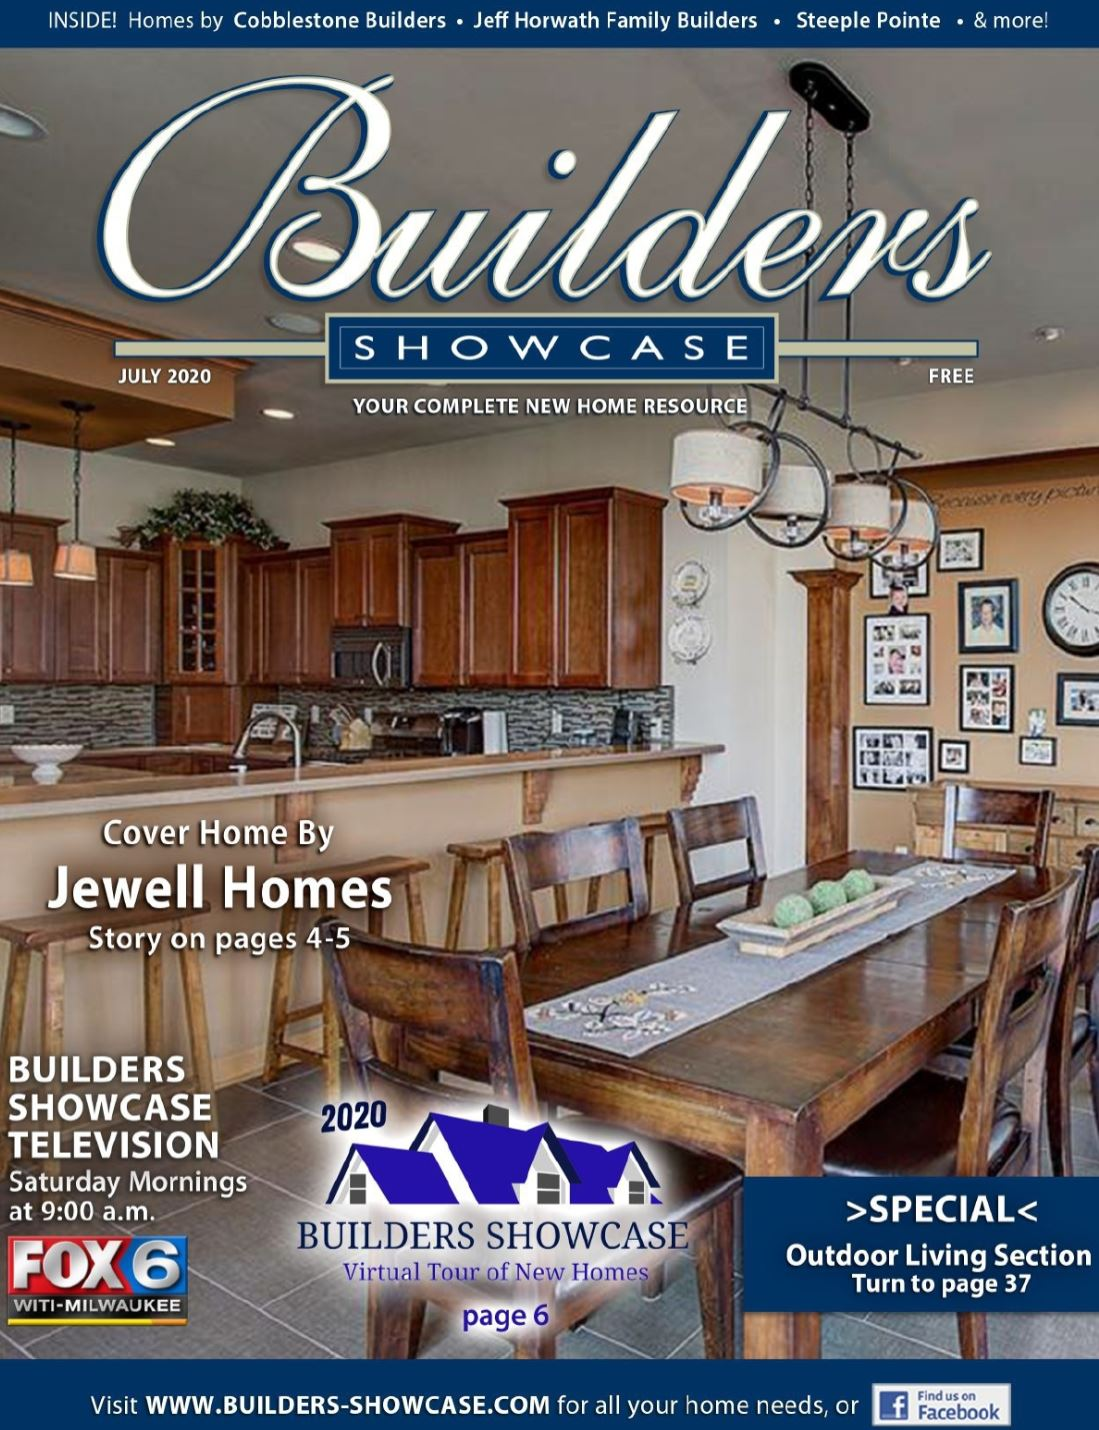 Jewell Homes on the Cover